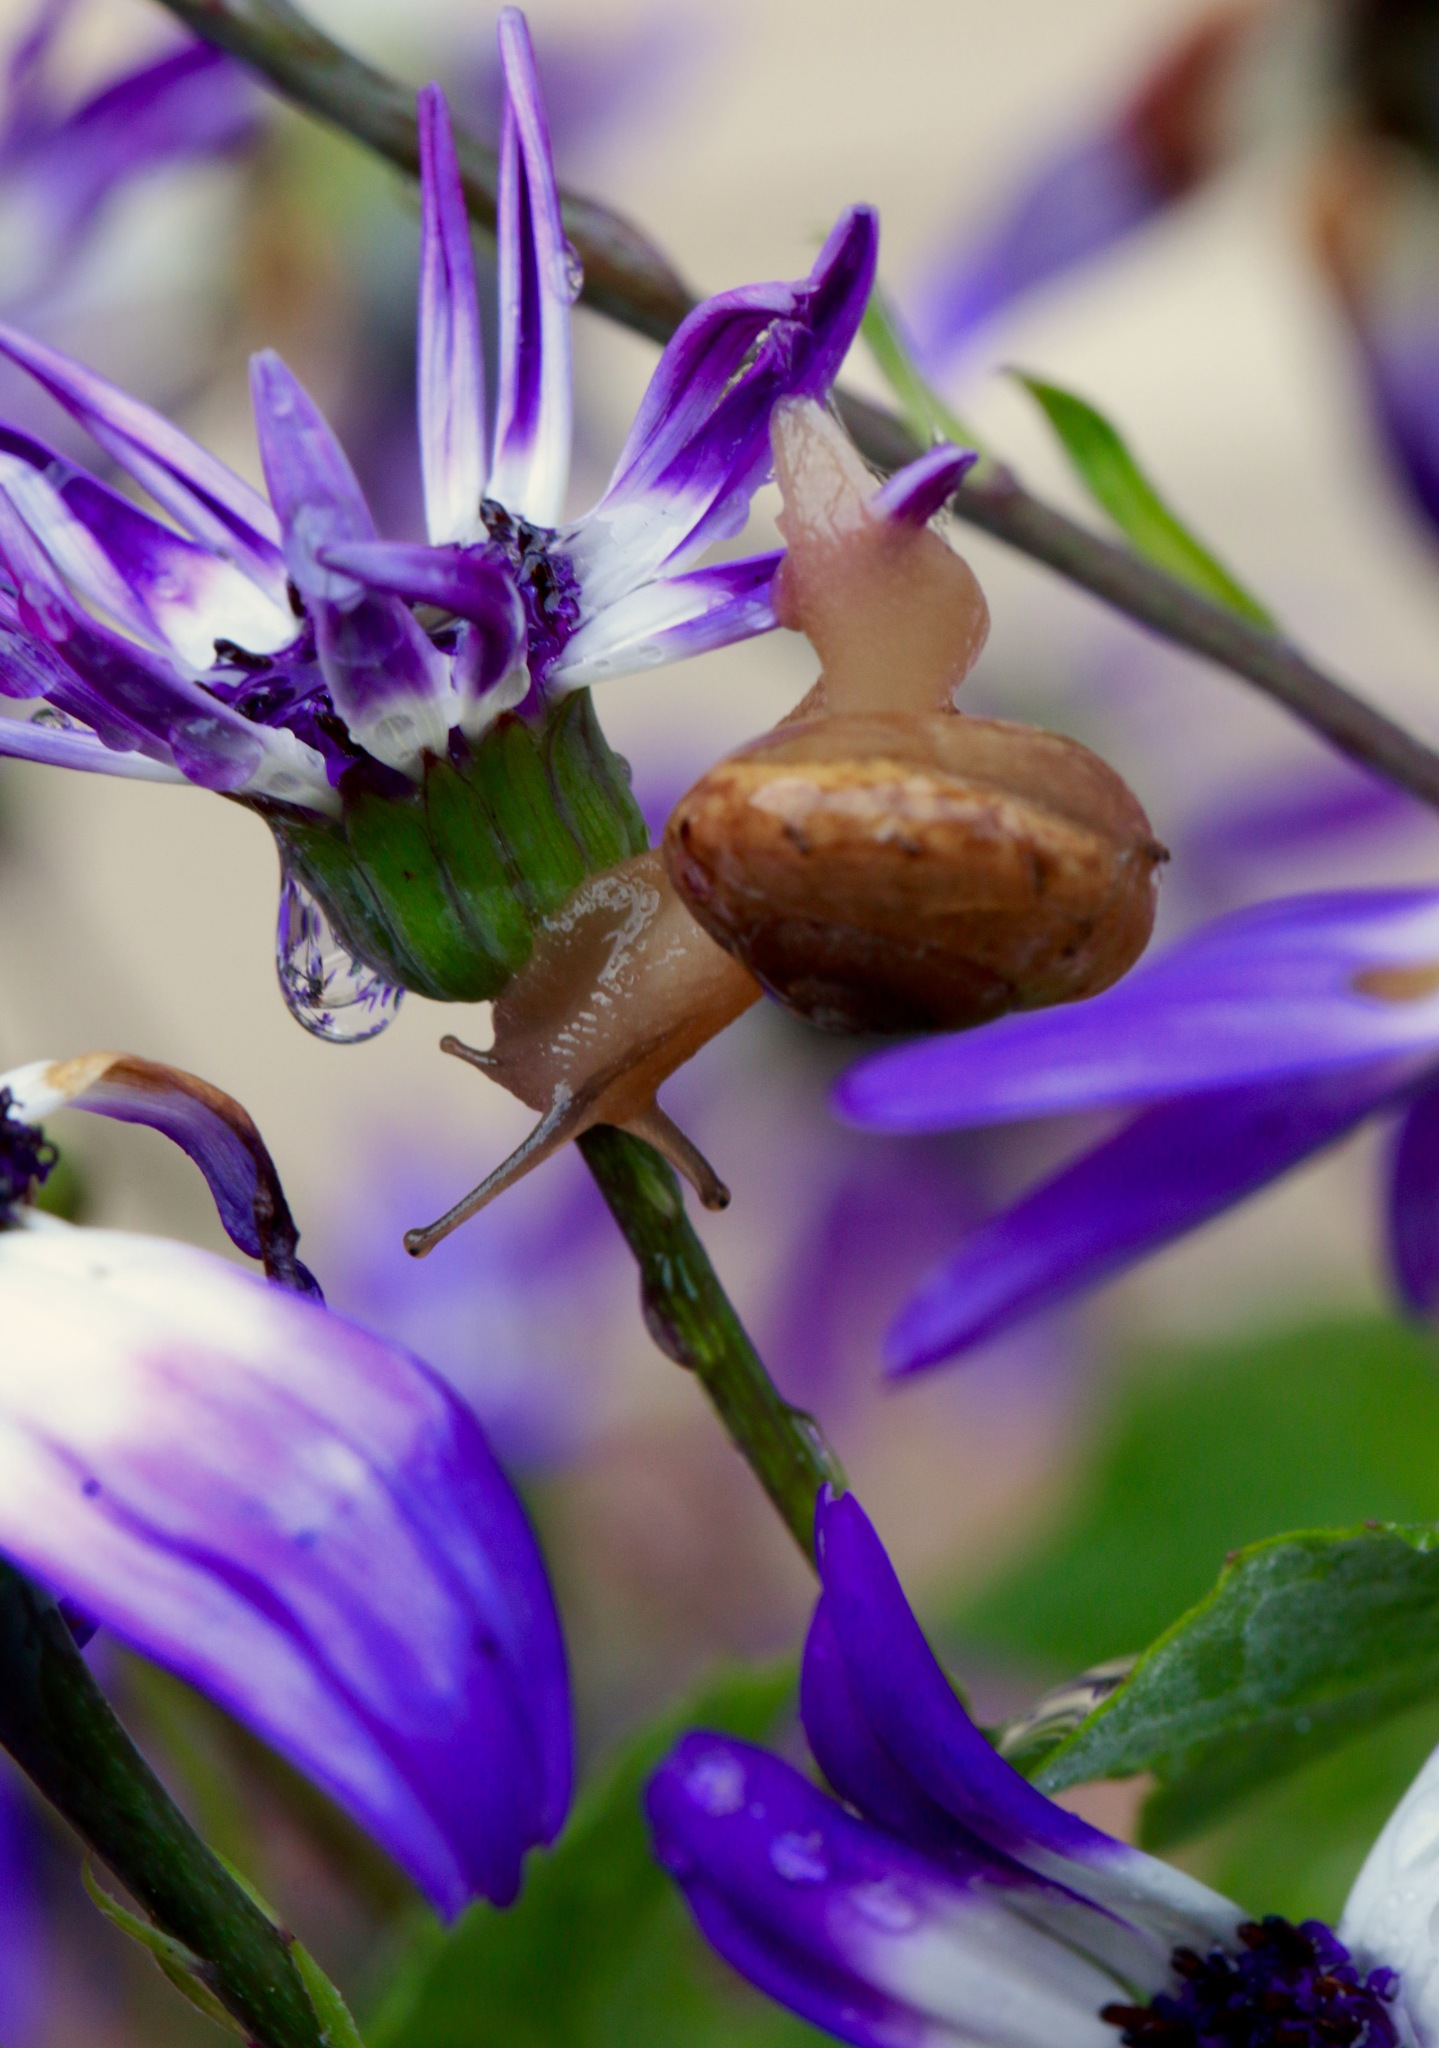 Garden Snail With Refraction by MyMagnolia